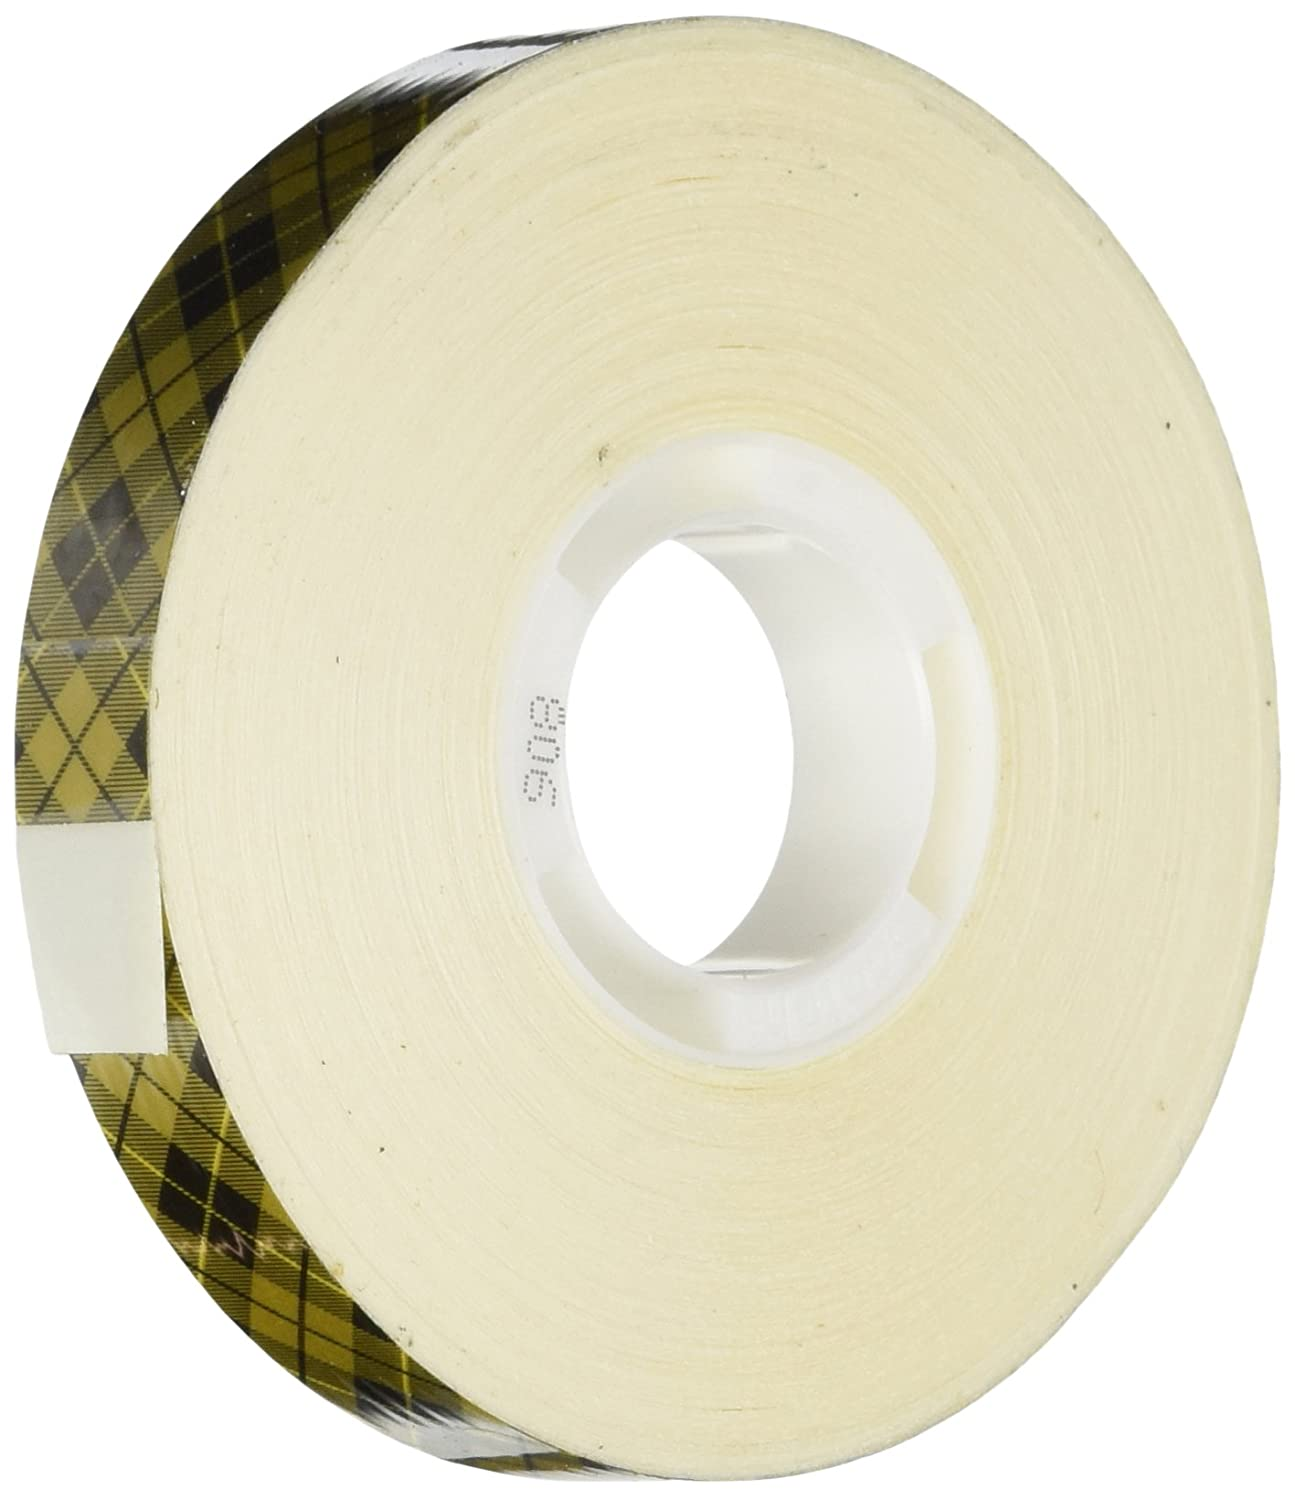 3M 0.5-inch x 36 yd Scotch ATG Gold Transfer Tape for Use in ATG700, Transparent 908-1/2